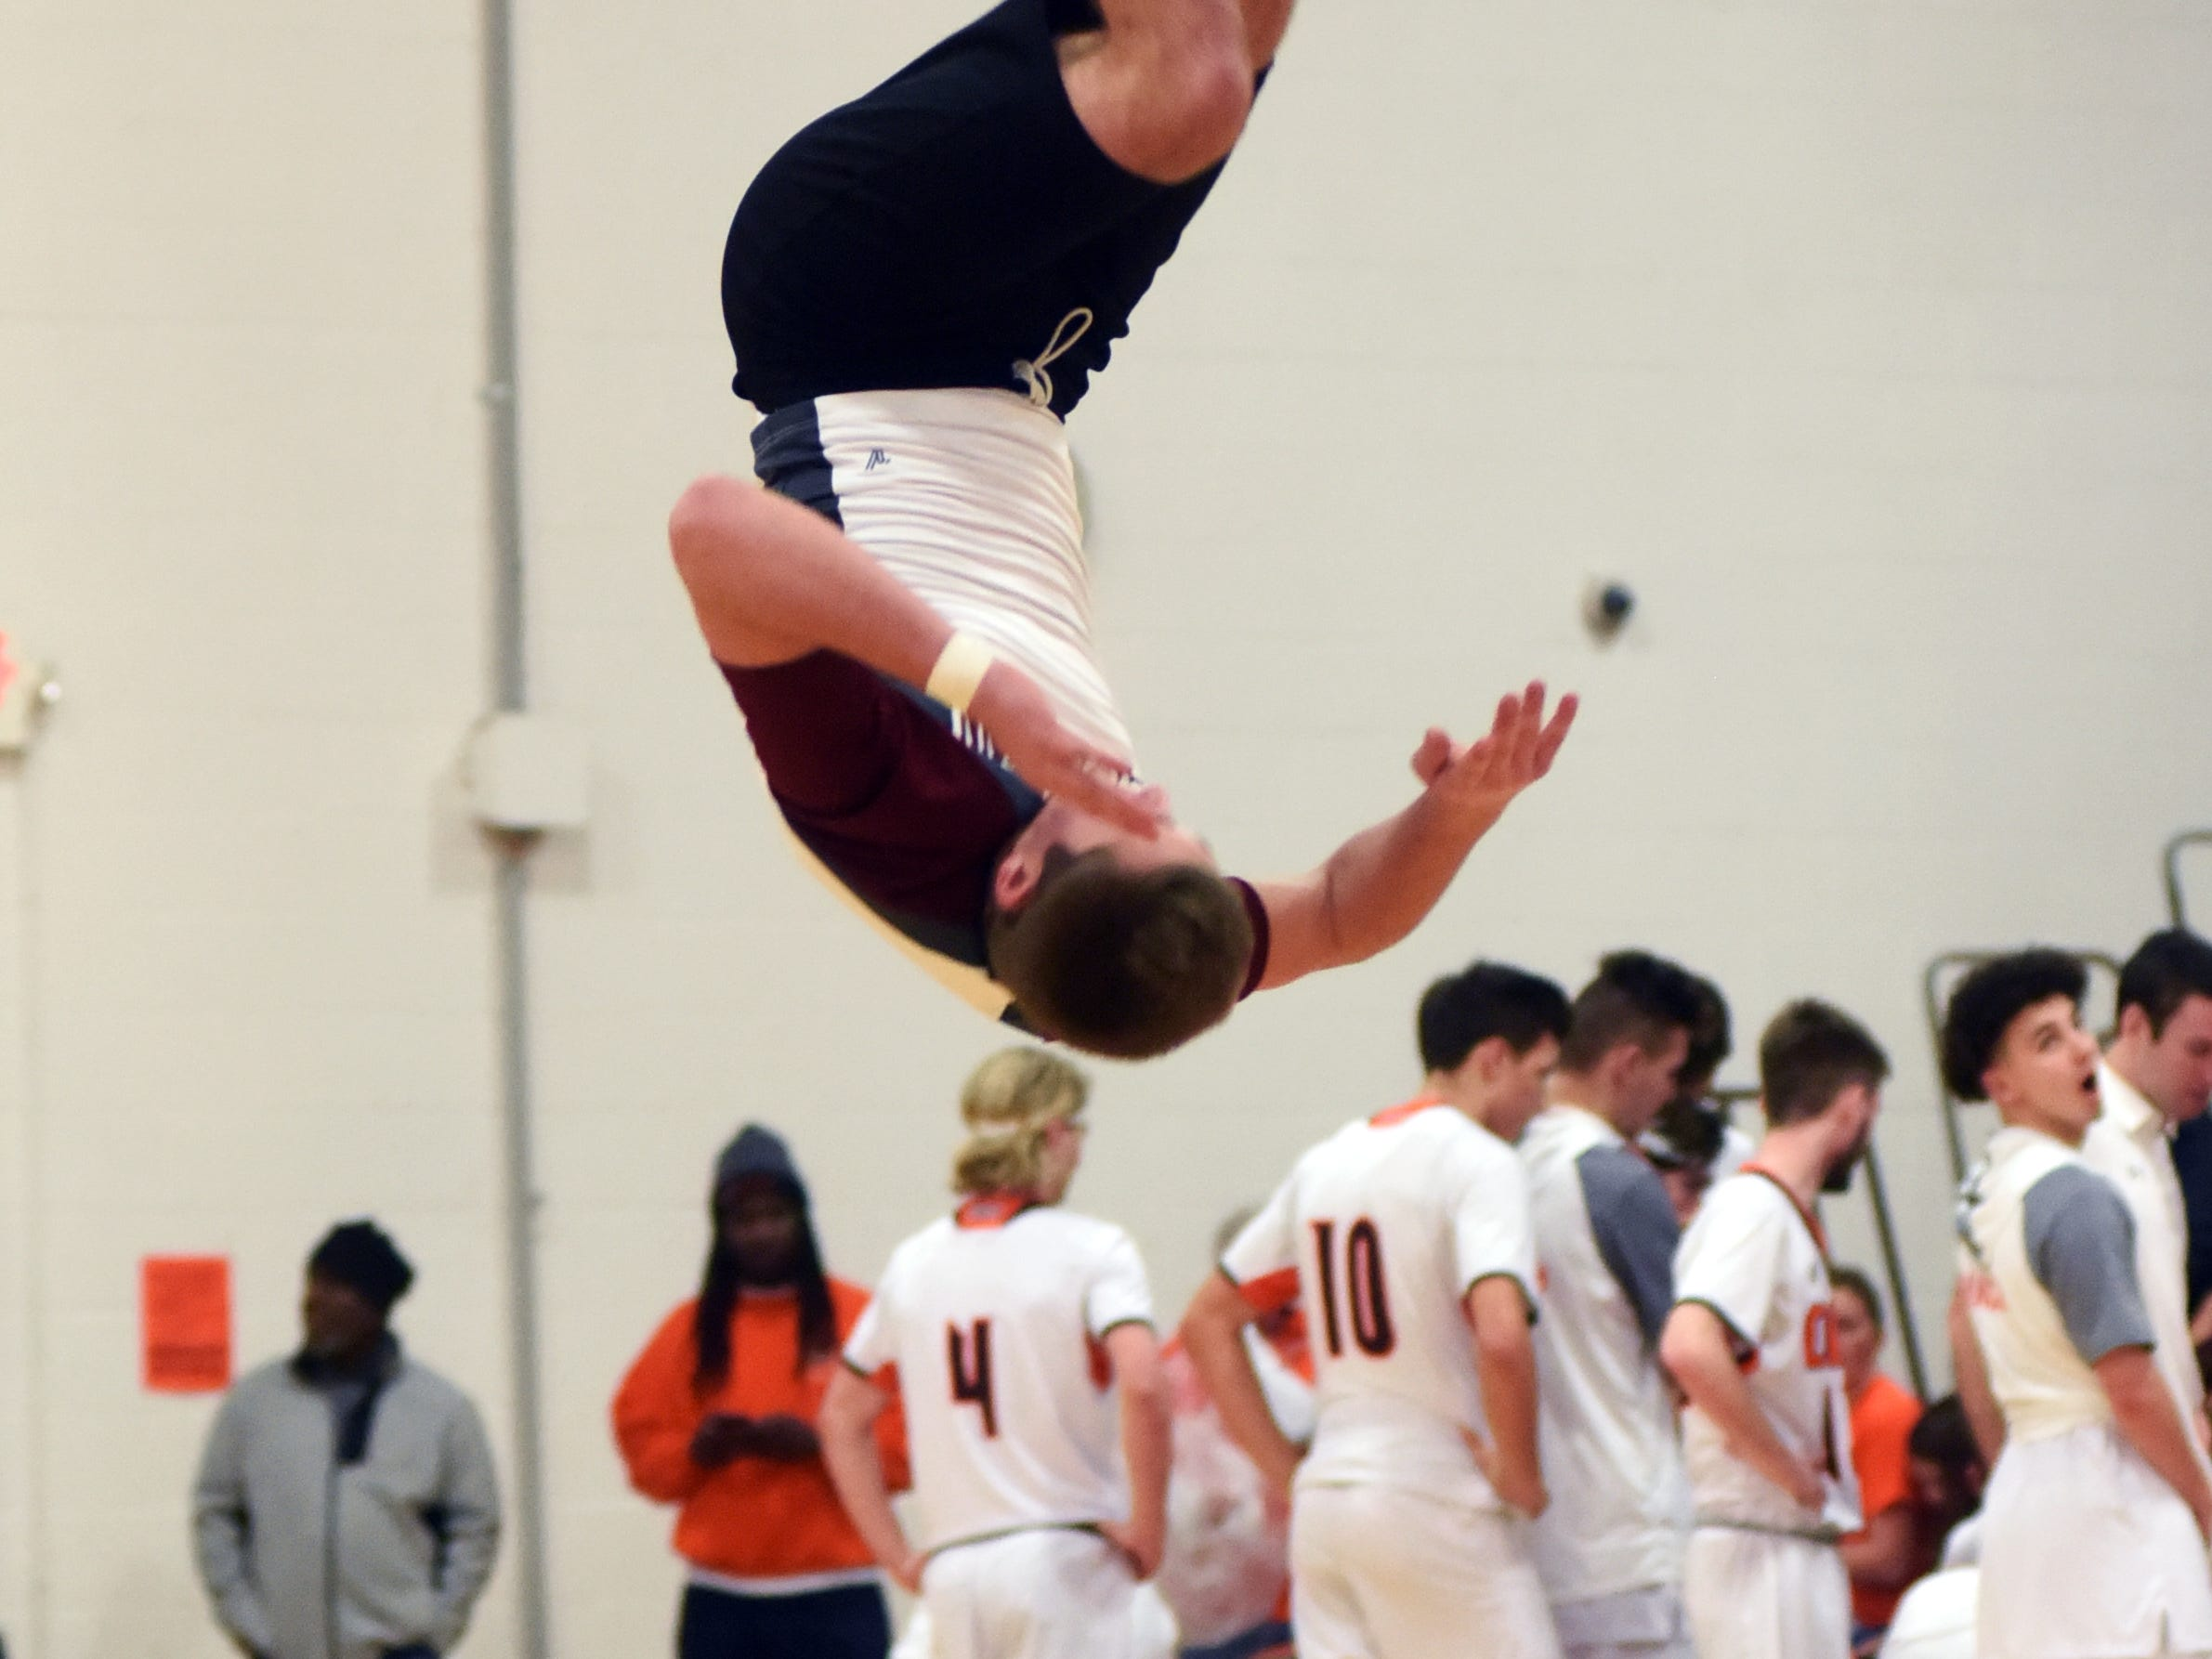 A John Glenn cheerleader does a flip during a timeout on Friday night in Byesville.